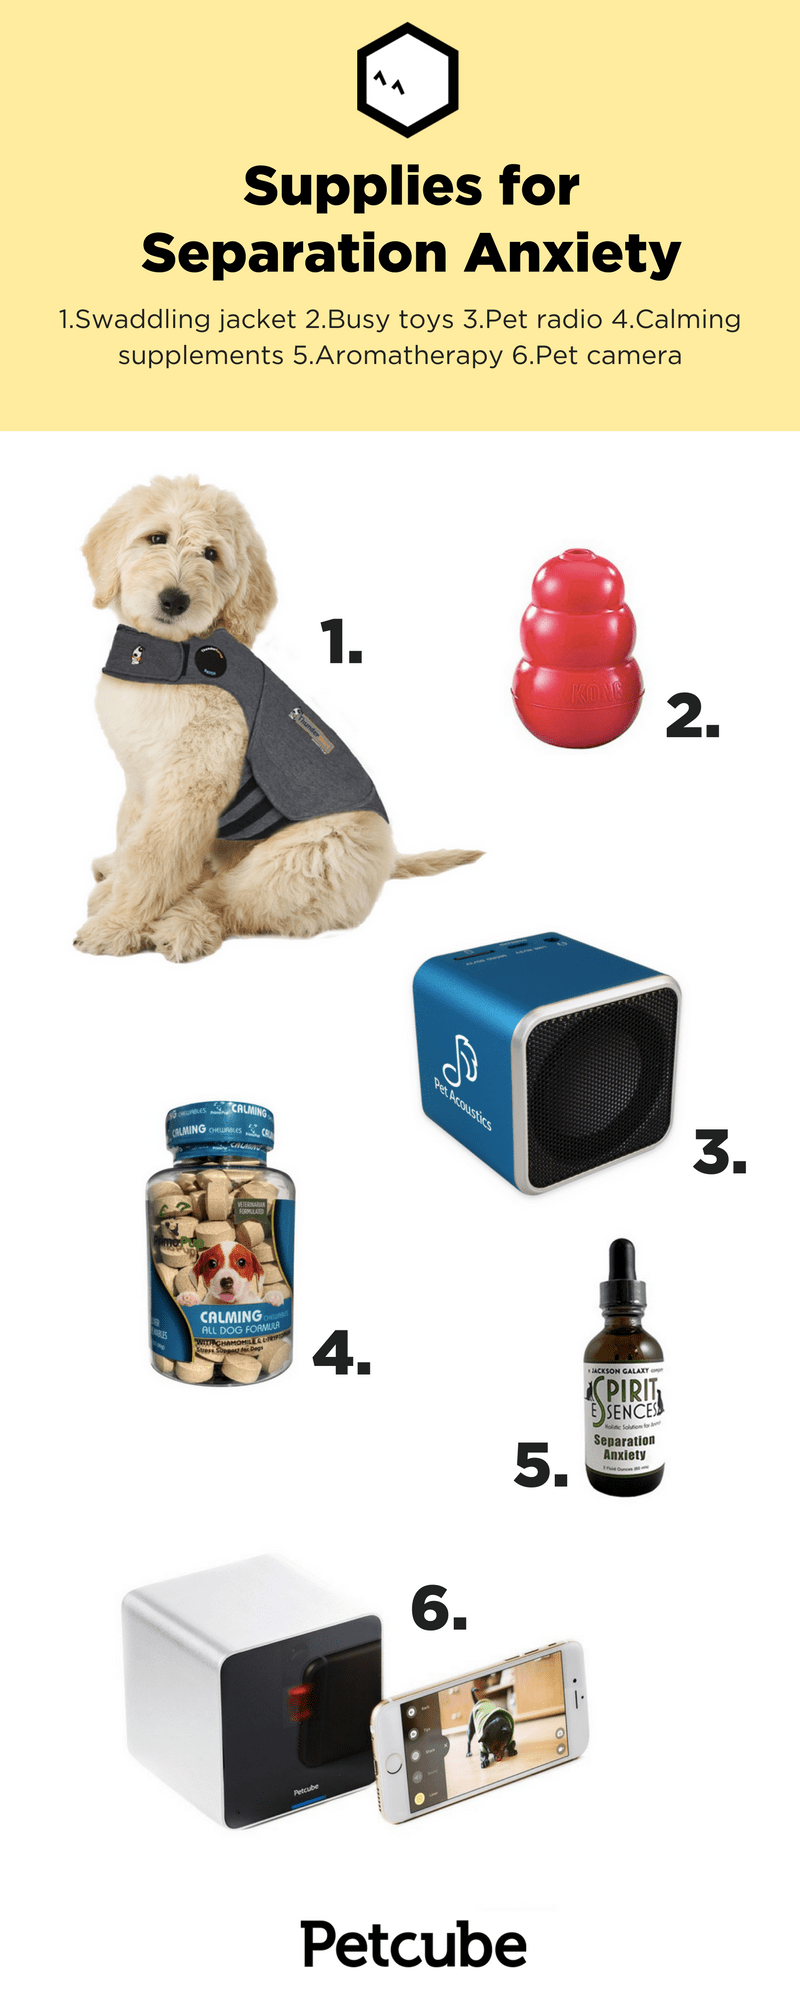 Infographic showing best supplies for separation anxiety in dogs